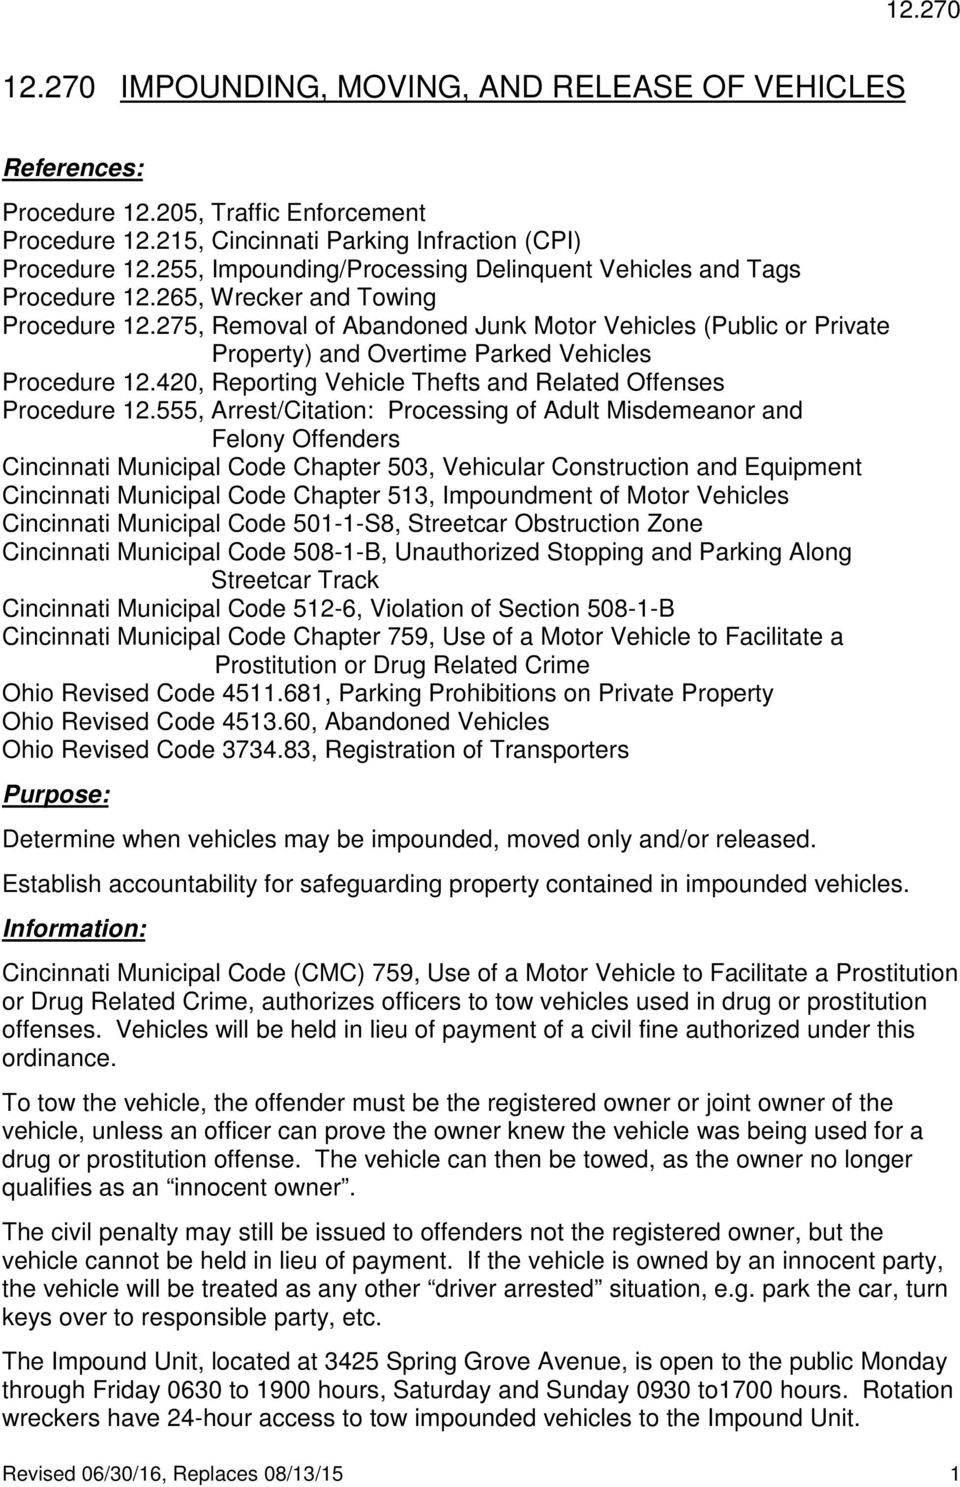 275, Removal of Abandoned Junk Motor Vehicles (Public or Private Property) and Overtime Parked Vehicles Procedure 12.420, Reporting Vehicle Thefts and Related Offenses Procedure 12.